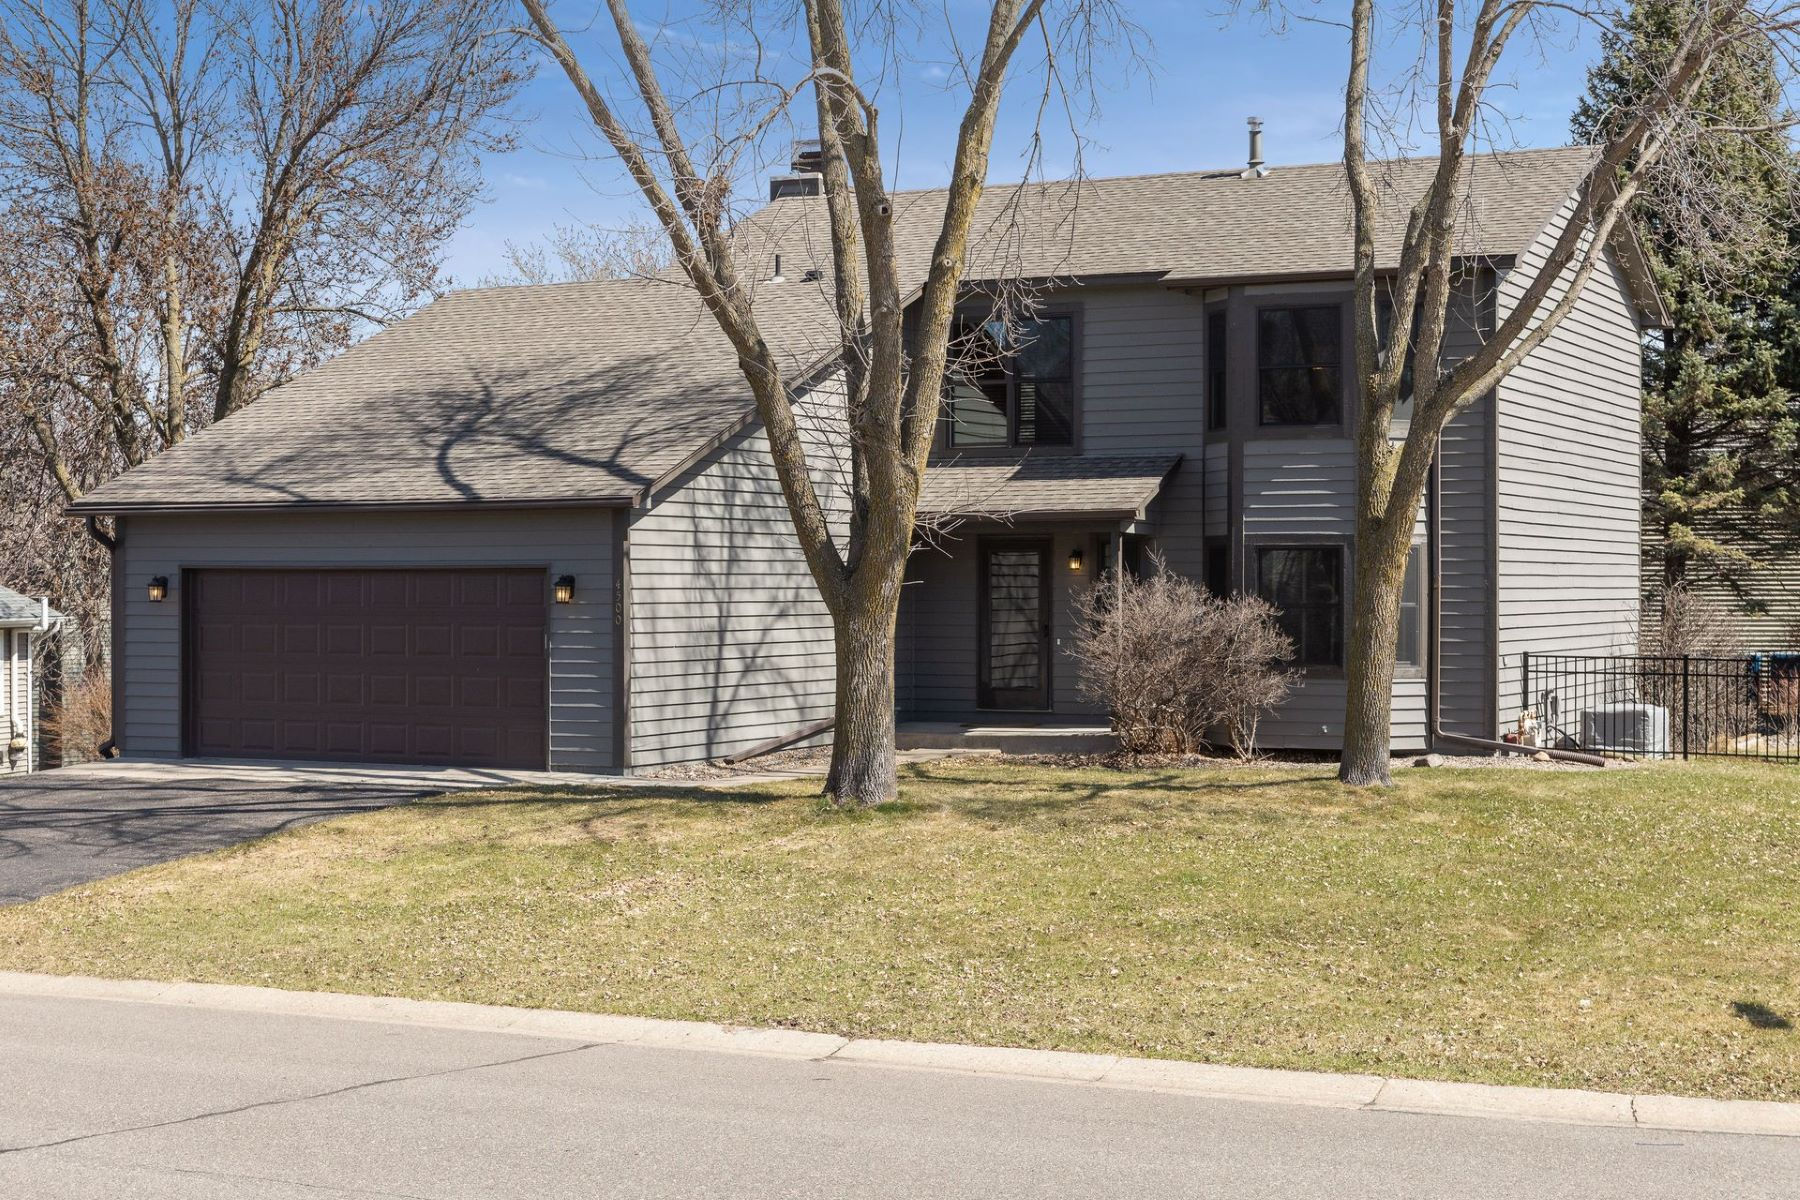 Single Family Homes for Sale at 4500 Wellington Lane N Plymouth, Minnesota 55442 United States